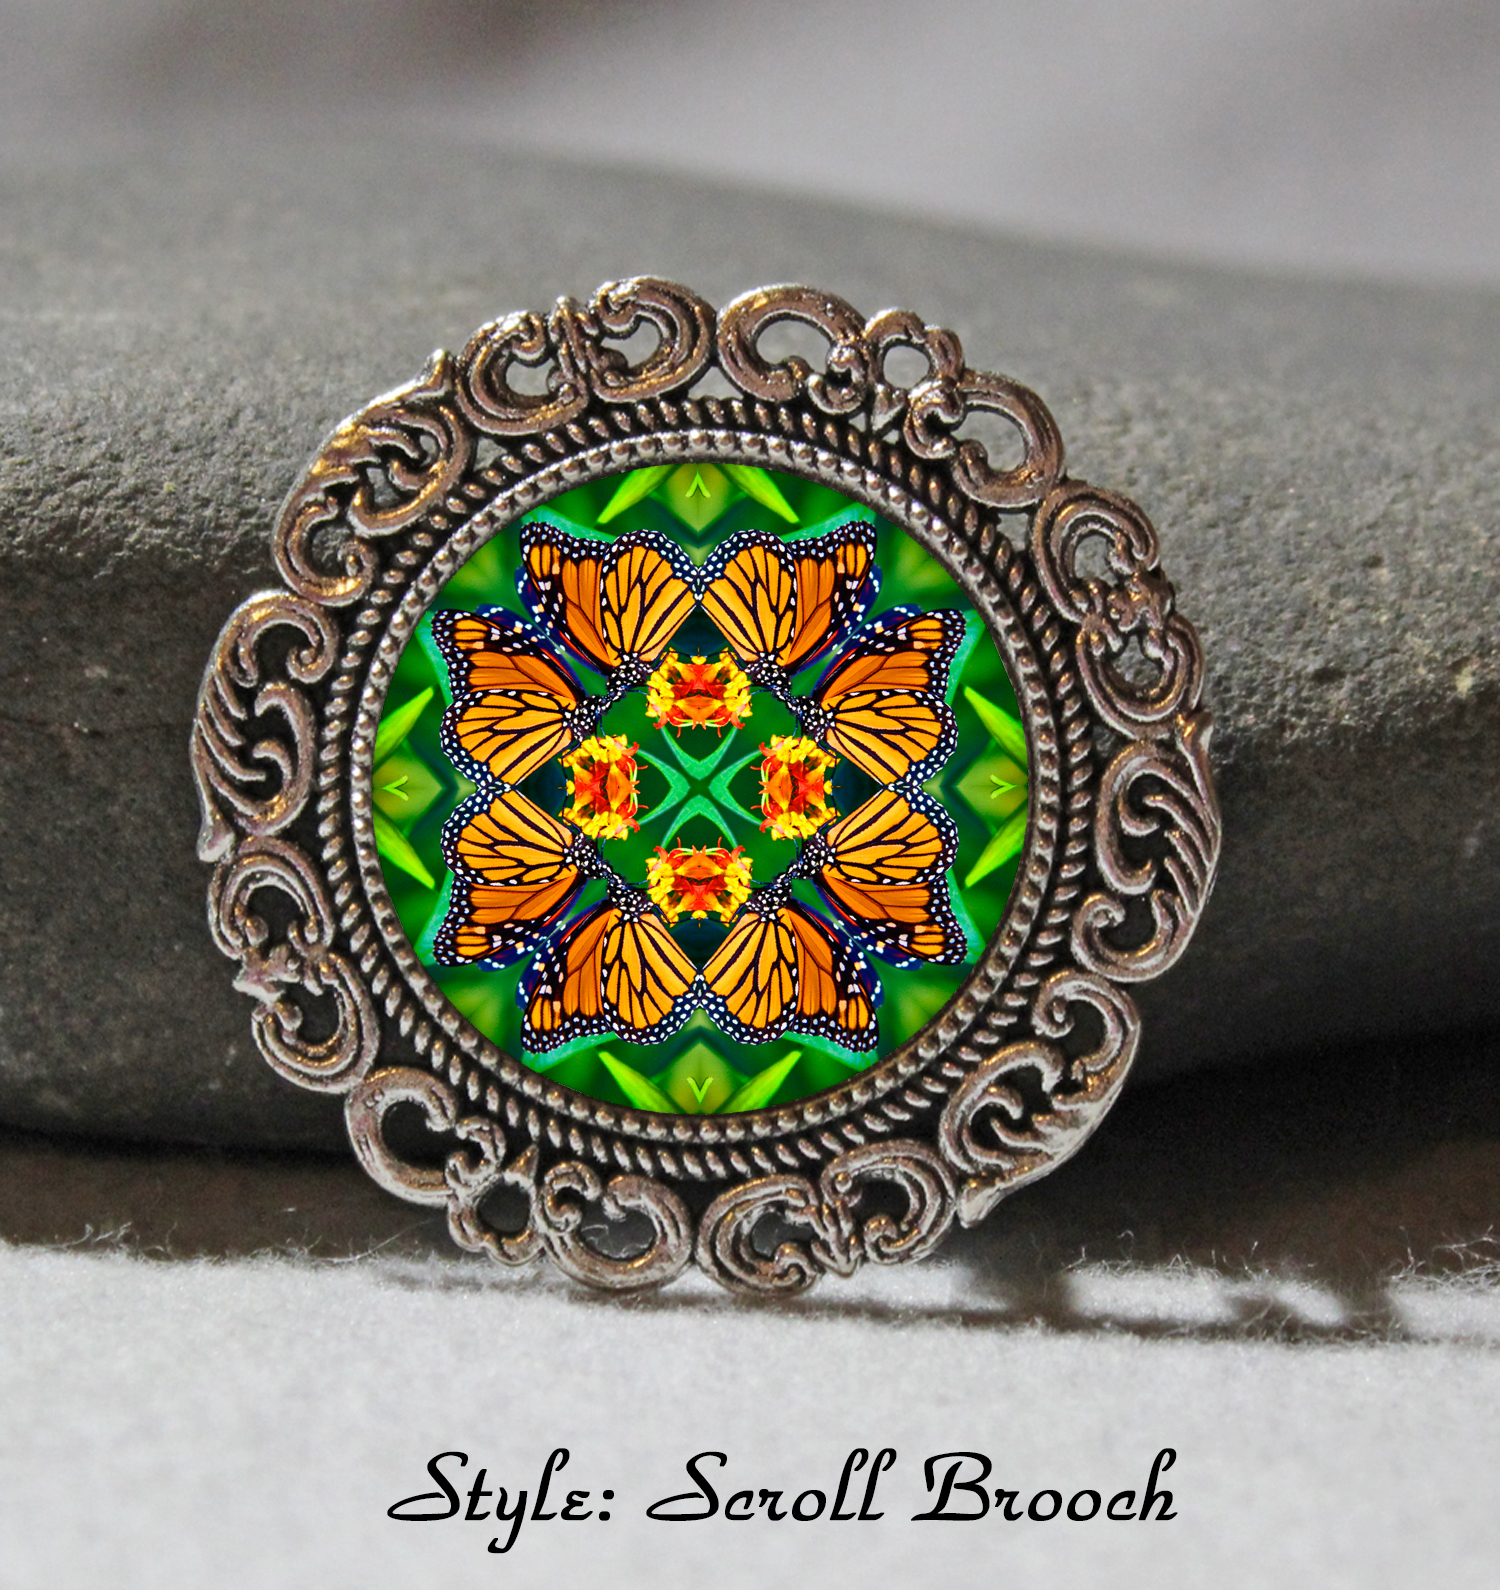 Brooch Lapel Pin Collar Pin Hat Pin Scarf Pin Monarch Butterfly Mandala Sacred Geometry Unique Gift For Her Transcendence